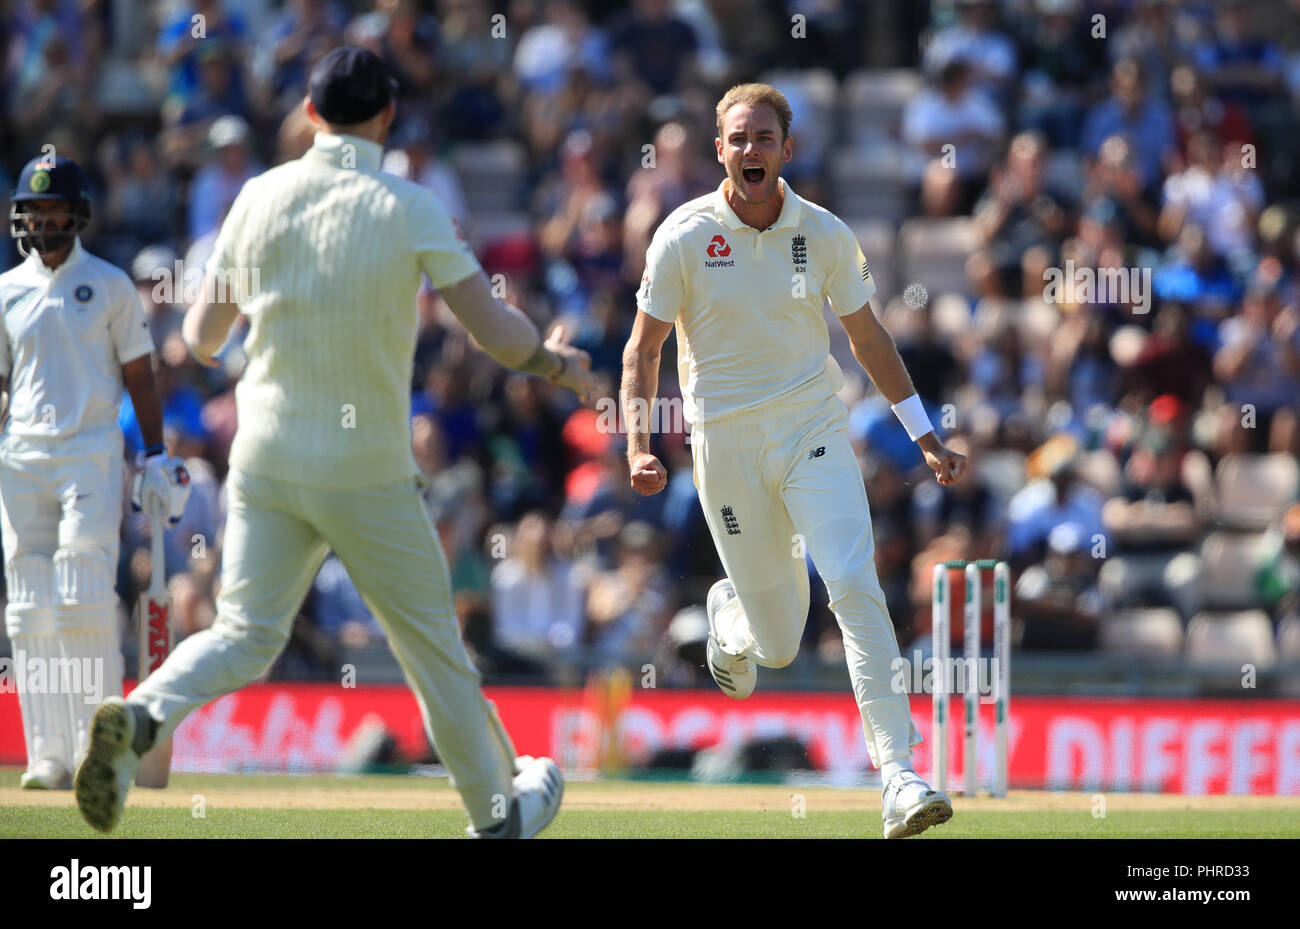 England's Stuart Broad celebrates taking the wicket of India's KL Rahul during day four of the fourth test at the AGEAS Bowl, Southampton. - Stock Image